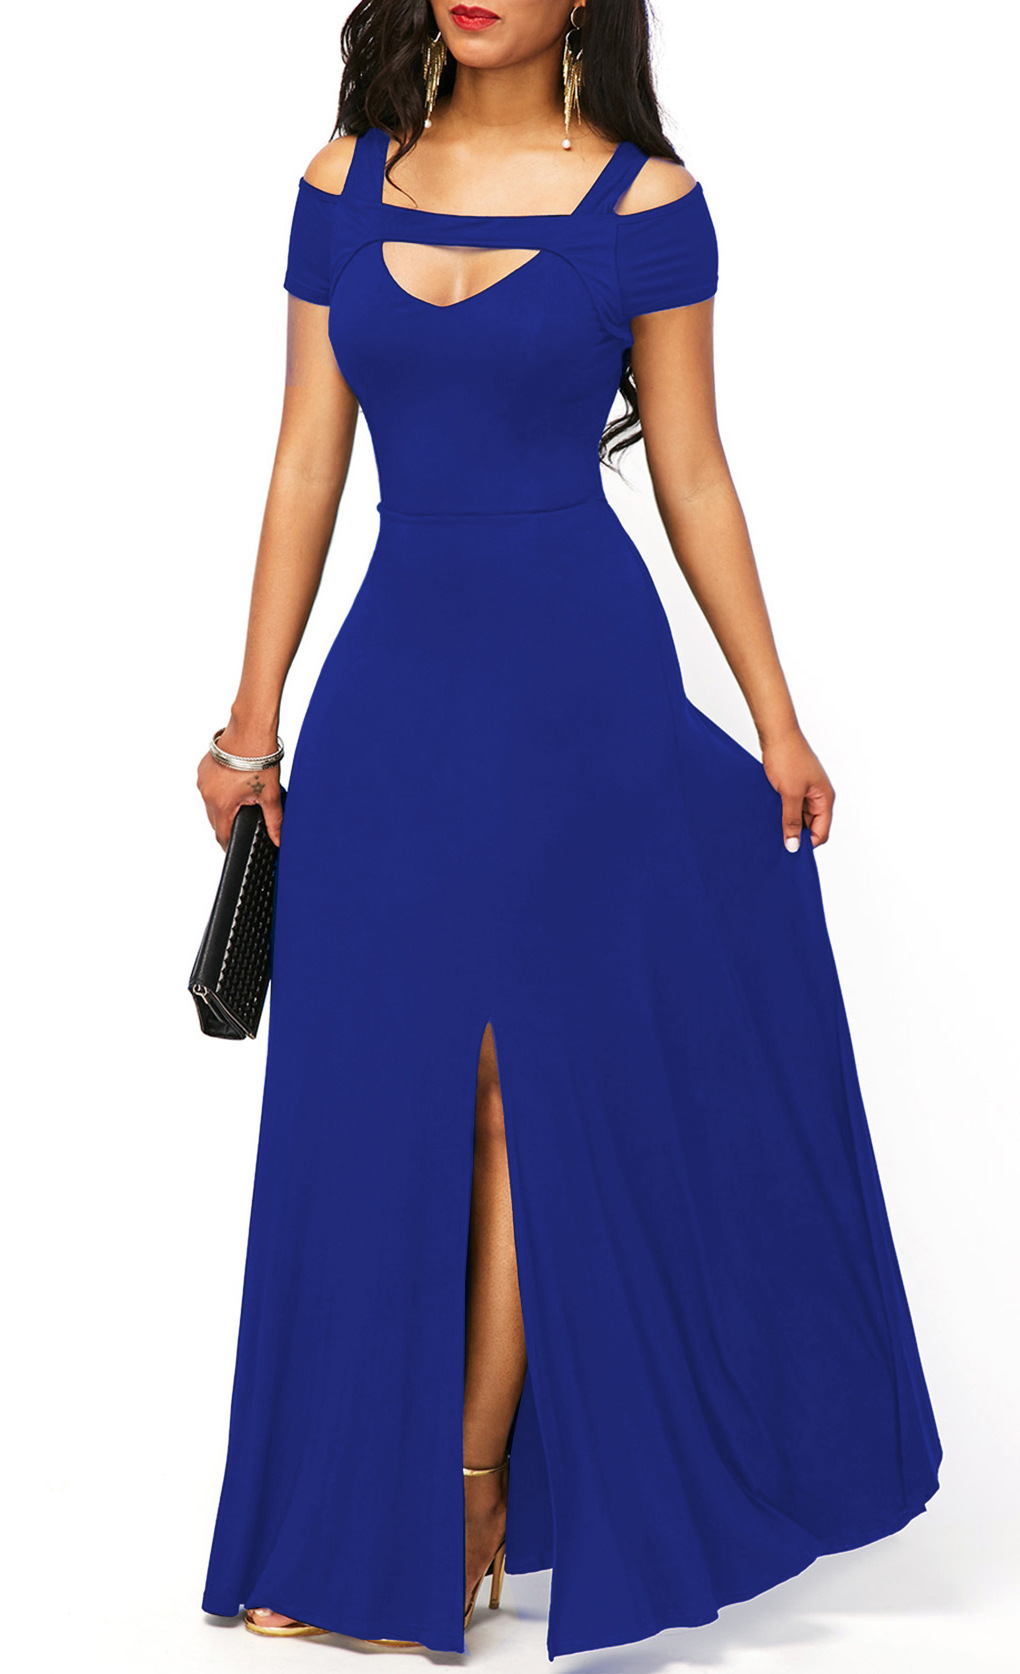 HTB18UMtdBGw3KVjSZFDq6xWEpXaw - Summer Dress Women Elegant Sexy V Neck Off Shoulder Split Long Party Dress Casual Plus Size Slim Ball Gown Maxi Dresses 5XL